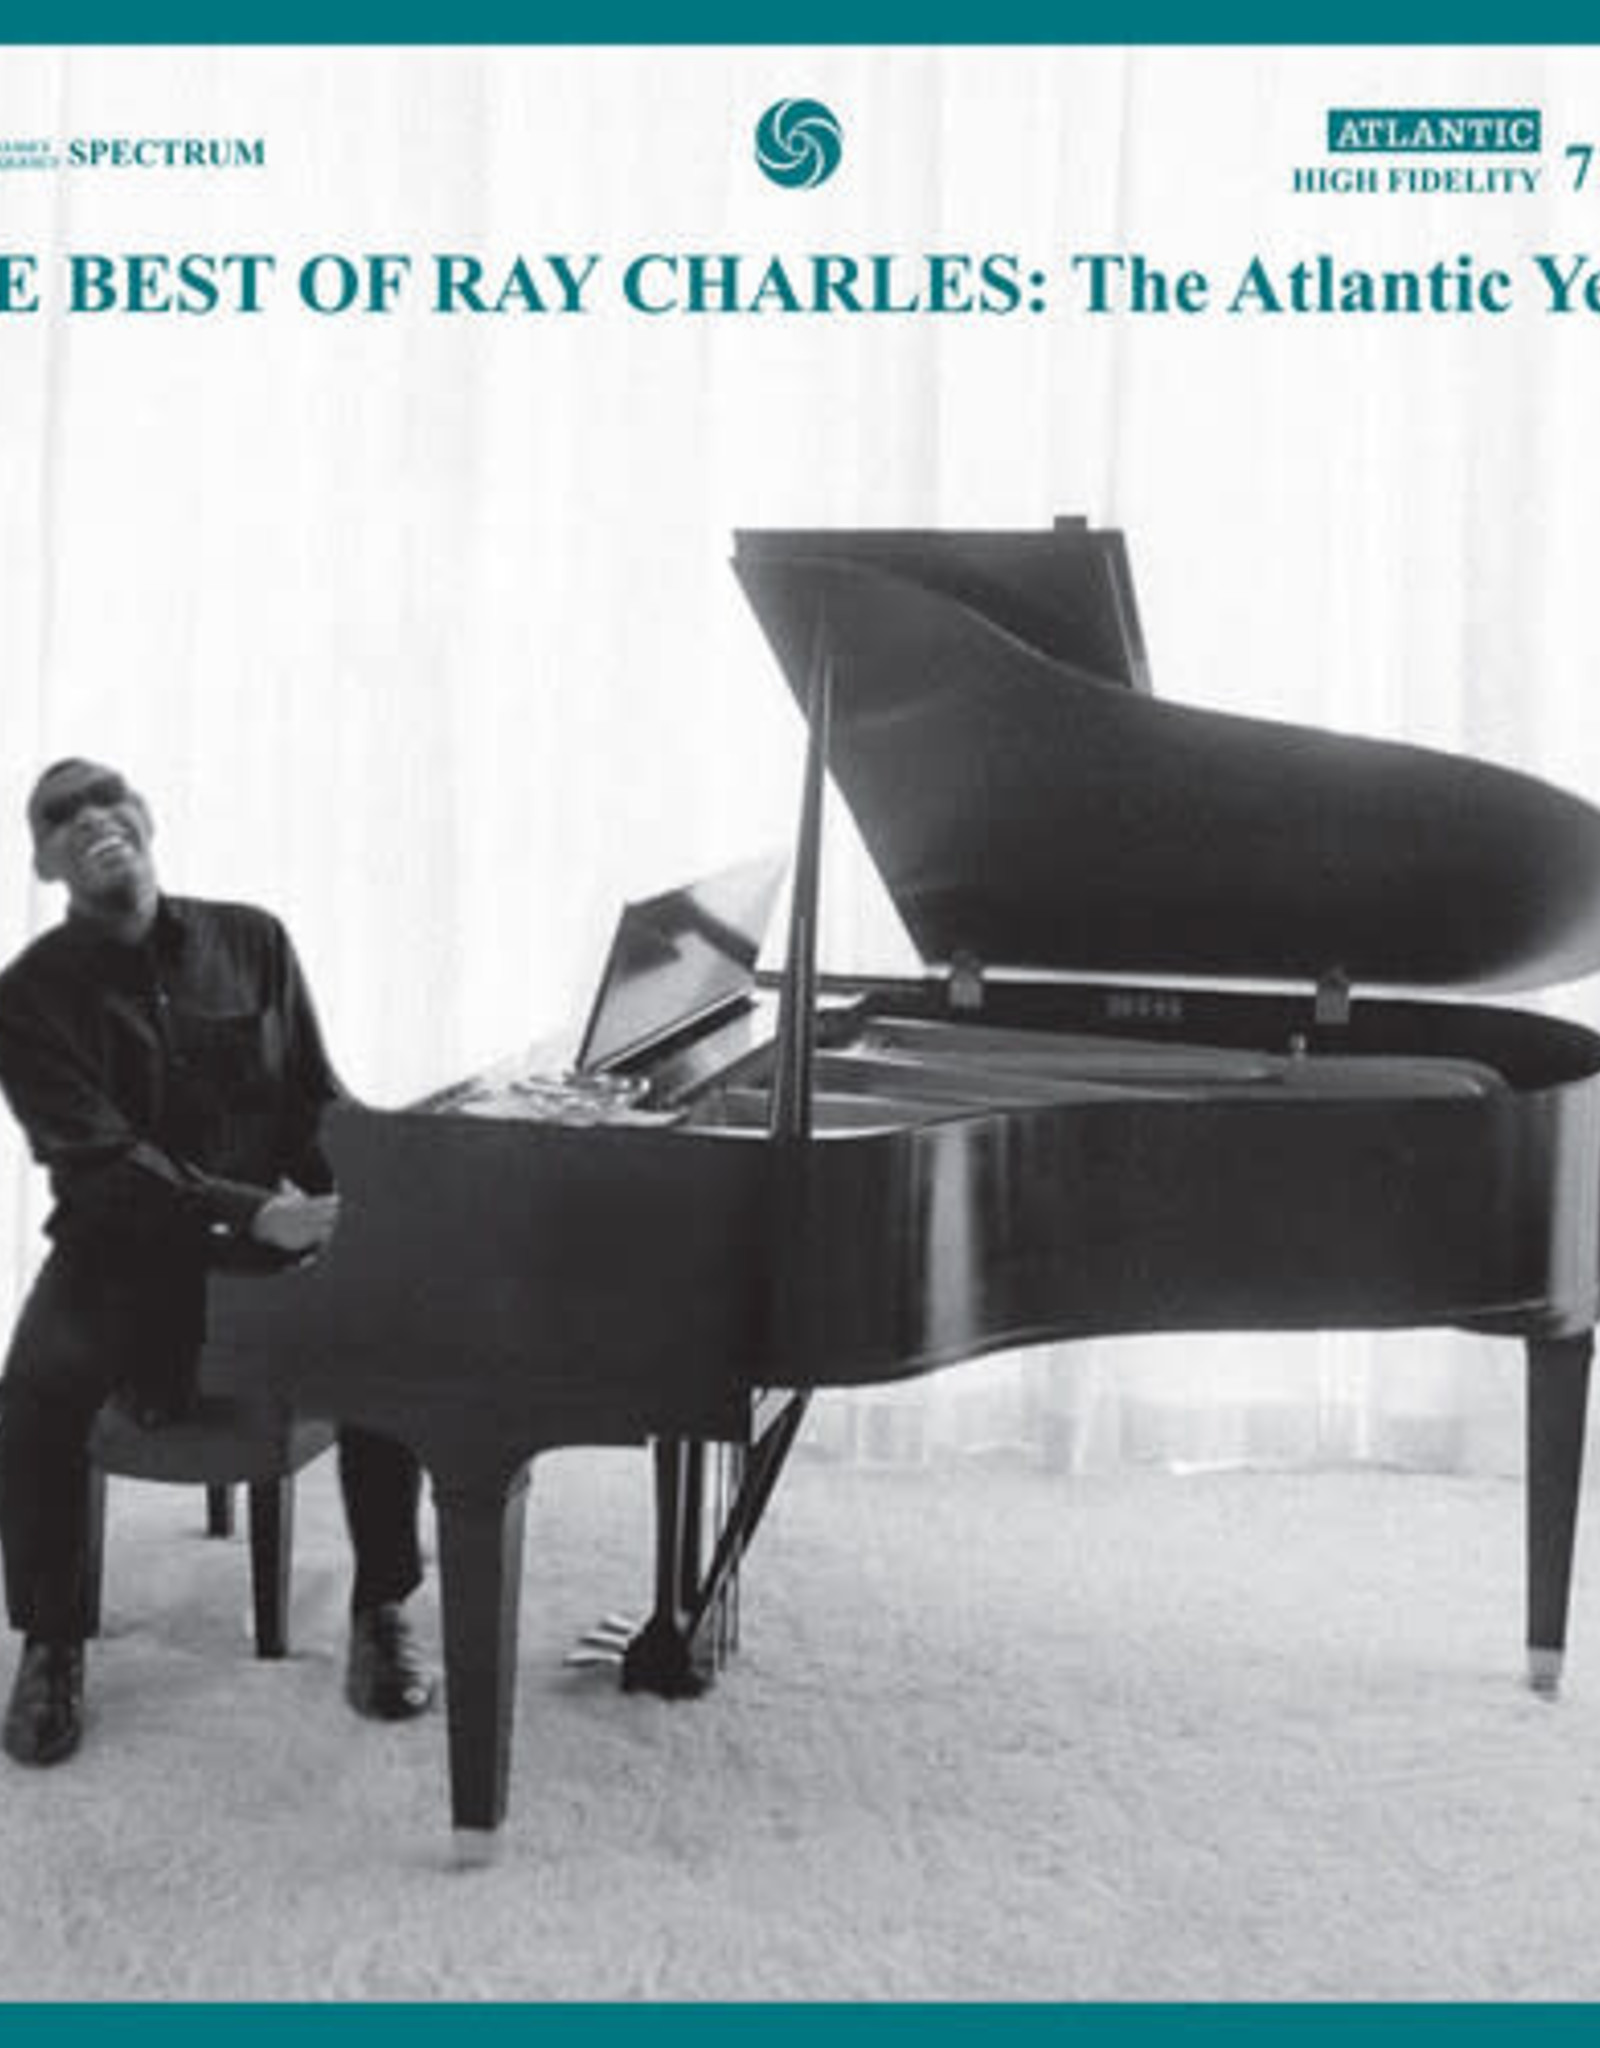 Ray Charles - The Best Of Ray Charles: The Atlantic Years (2LP)(White Vinyl)